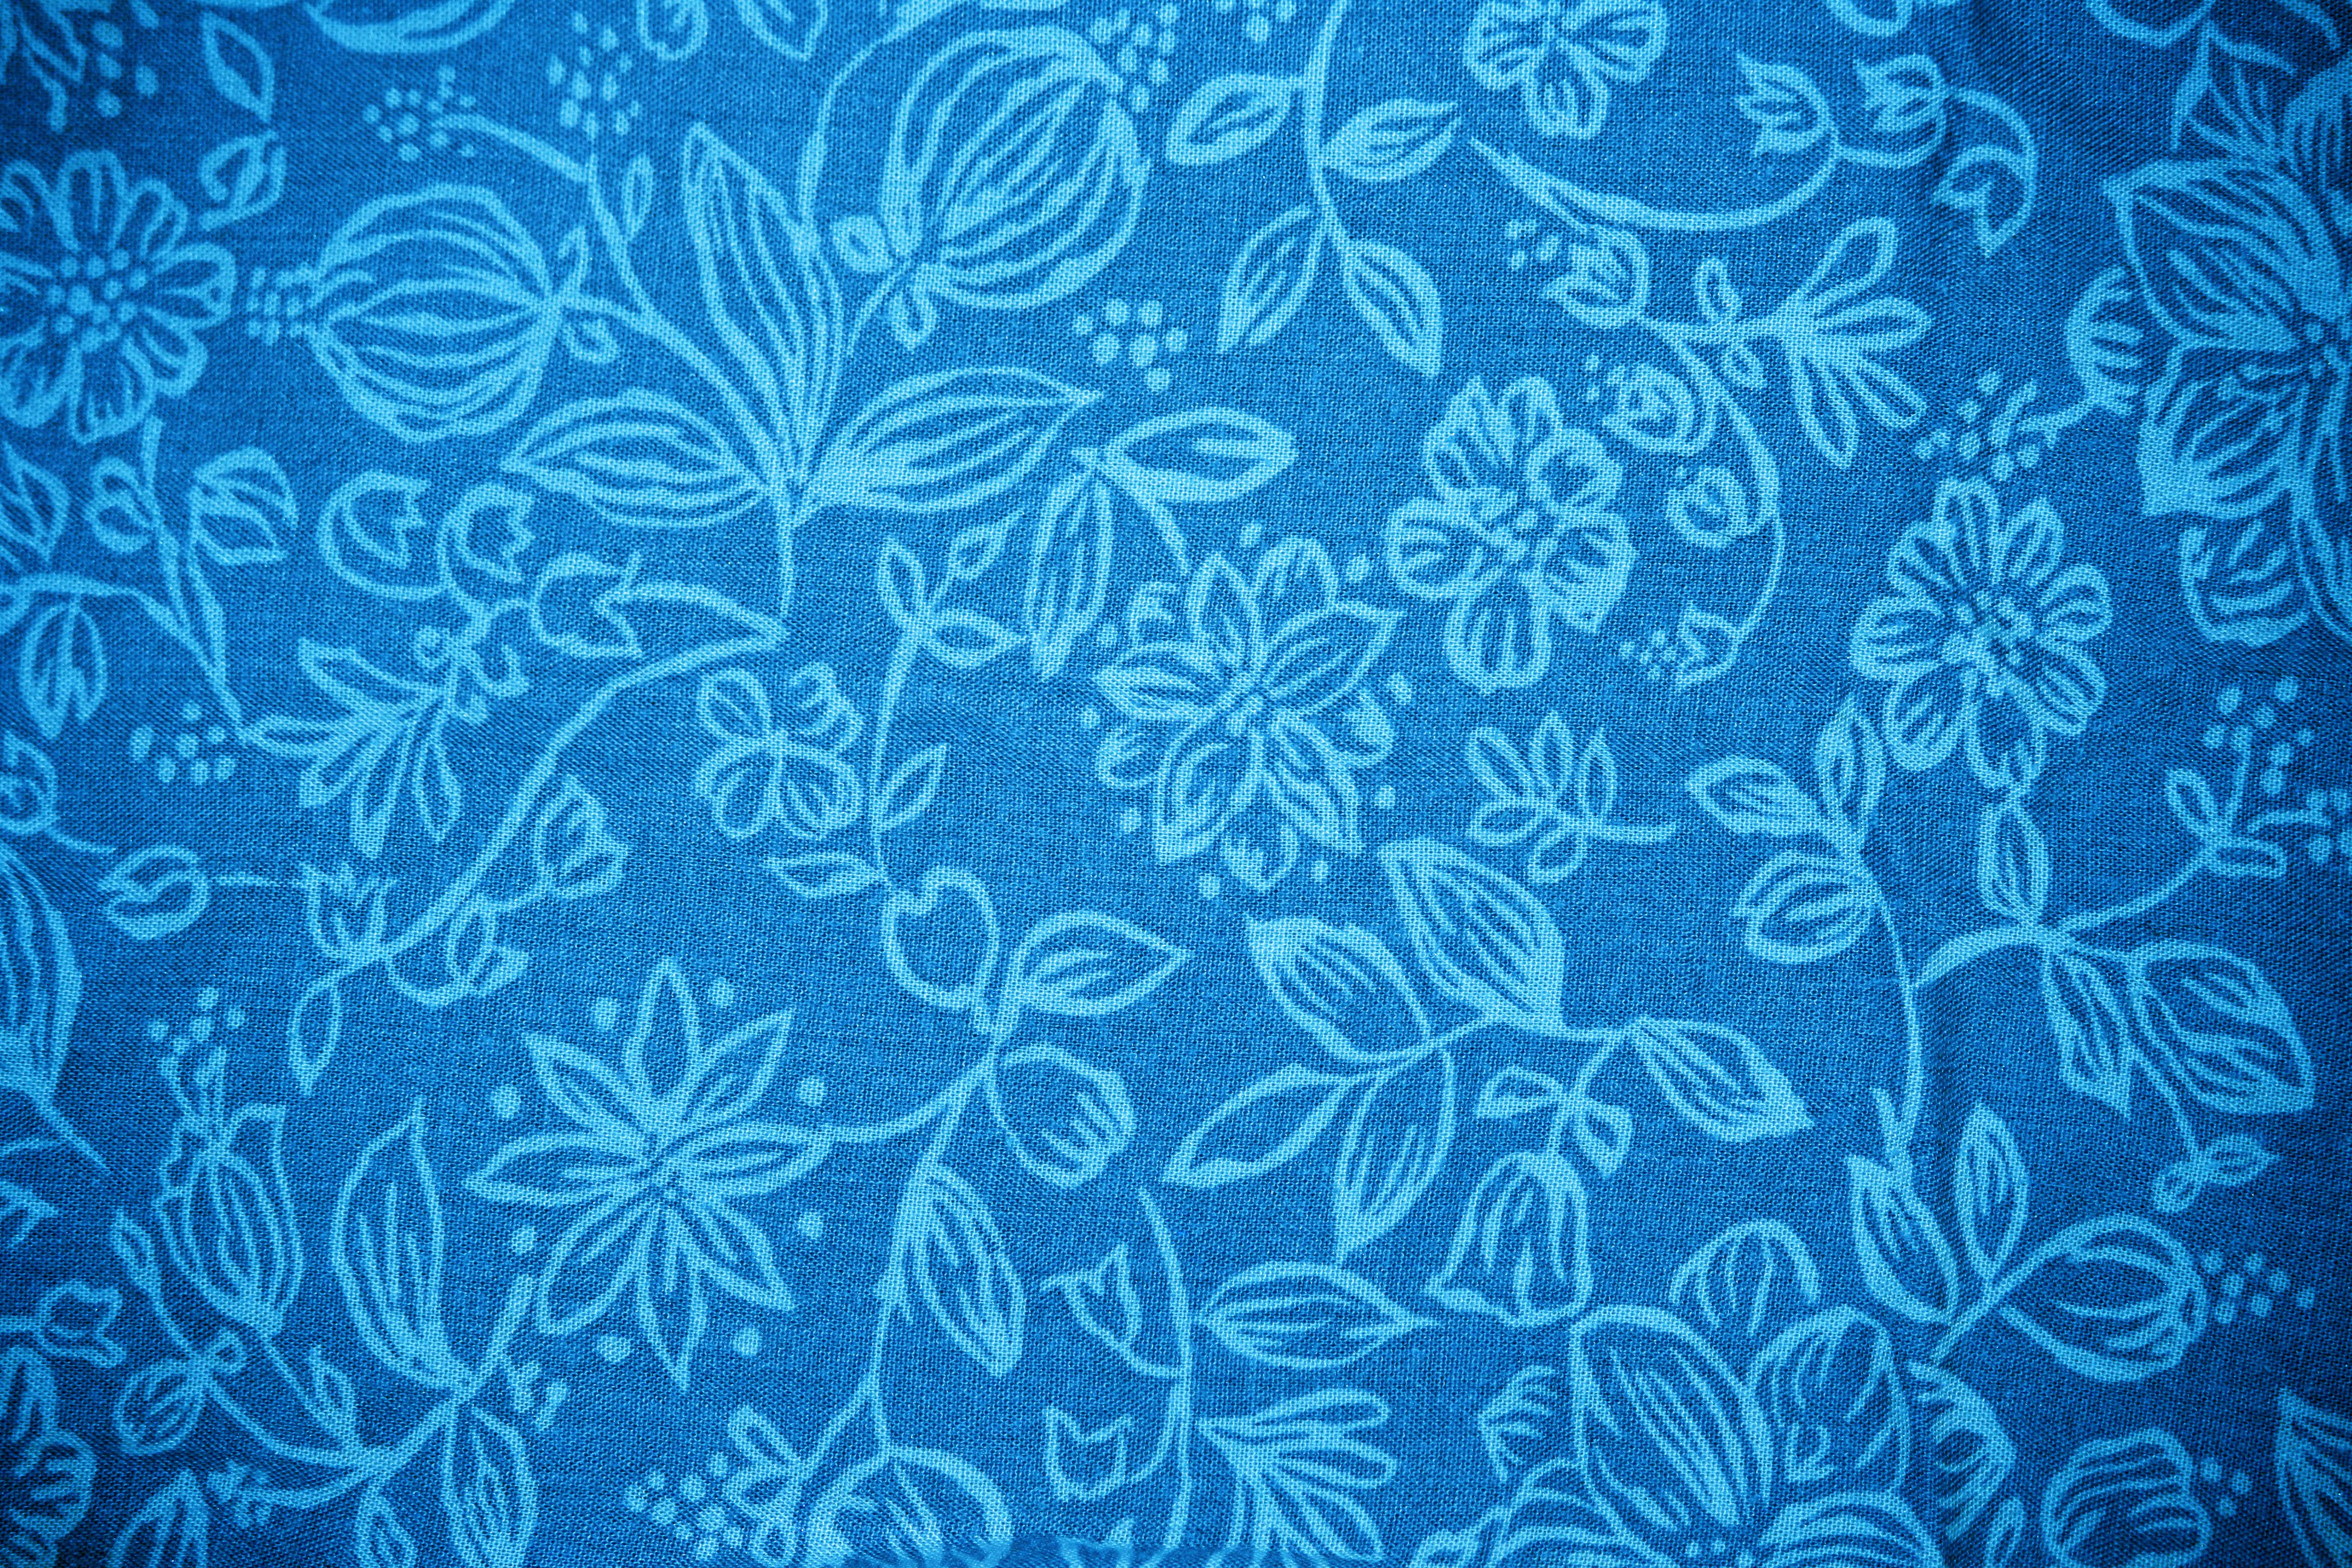 Sky blue fabric with floral pattern texture free high resolution